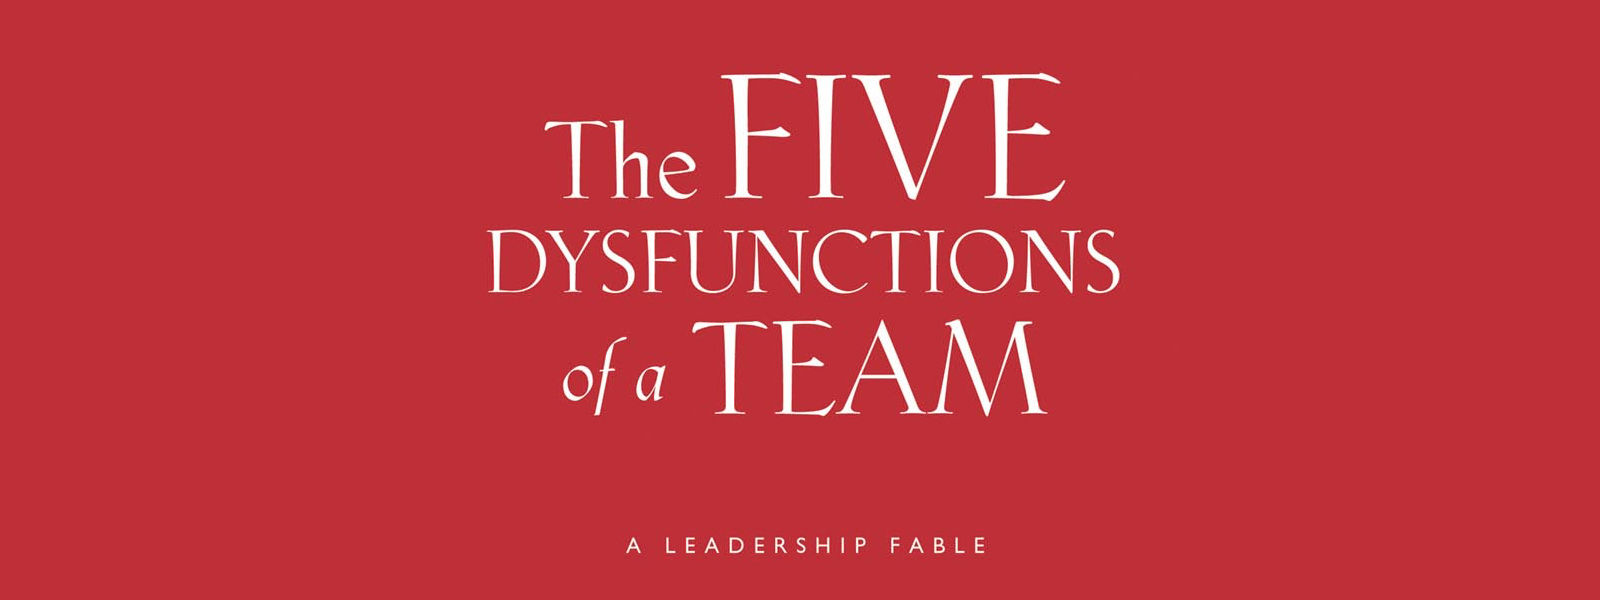 The Five Dysfunctions of a Team (2008)